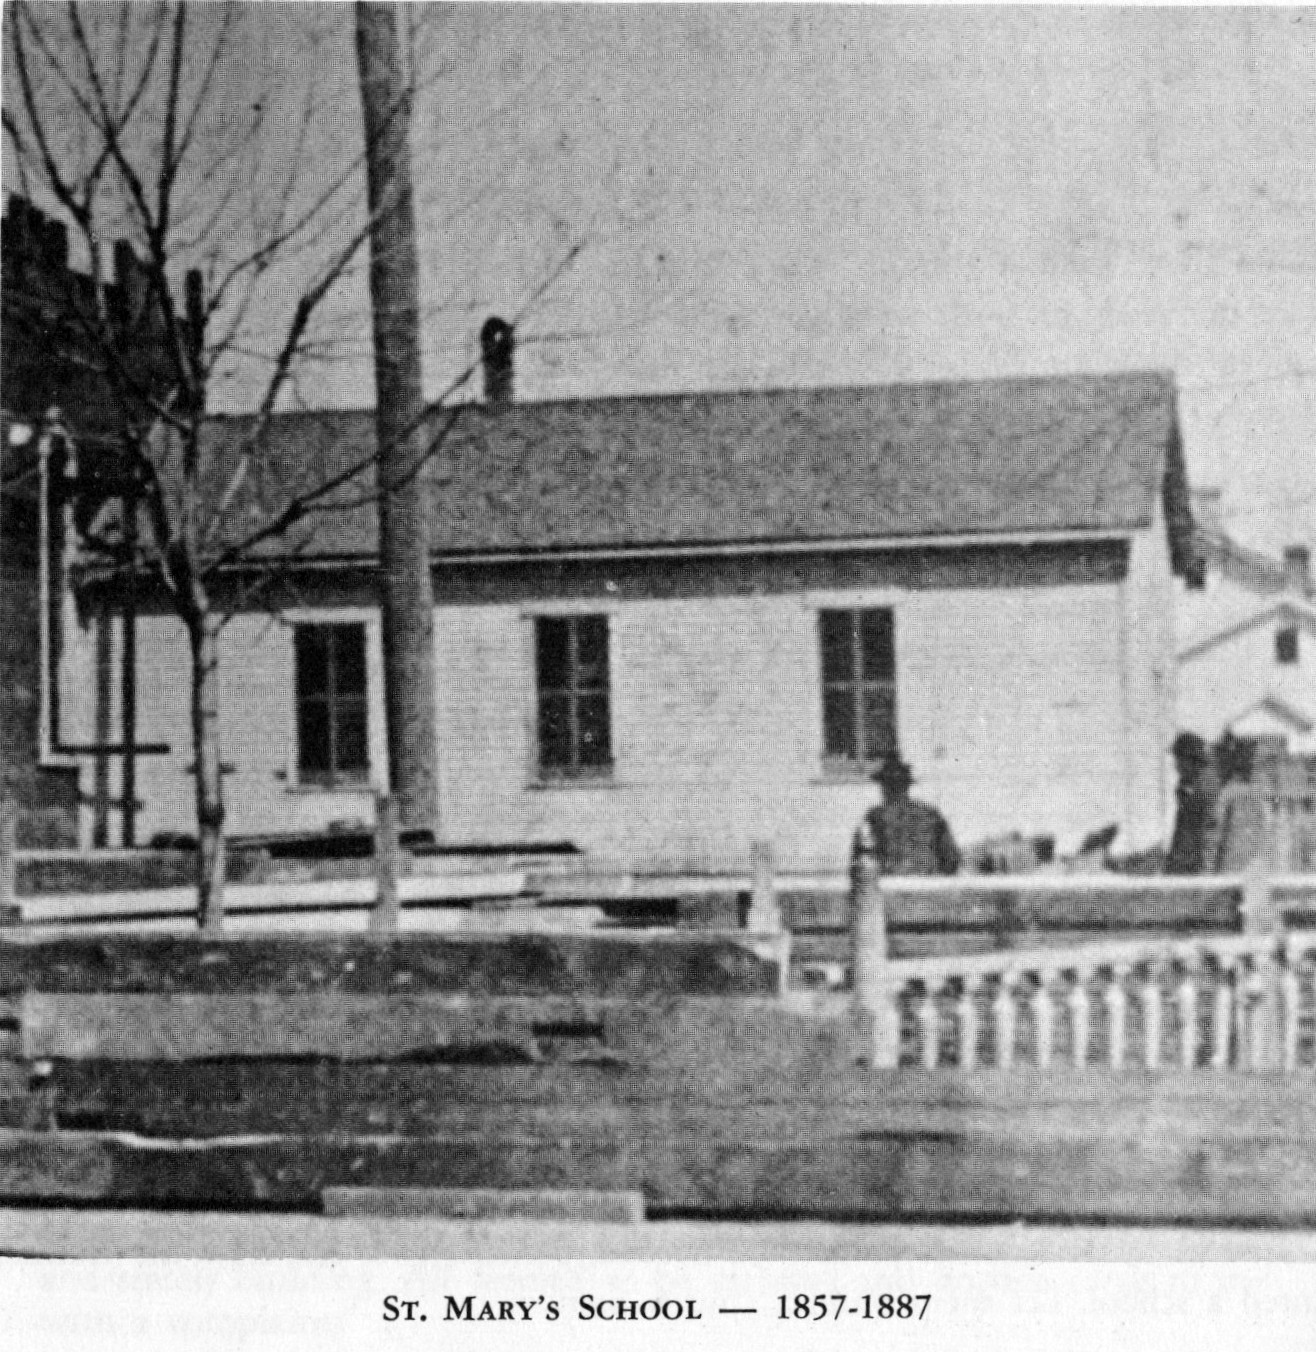 Original one-room St. Mary's School, 1857-1887.